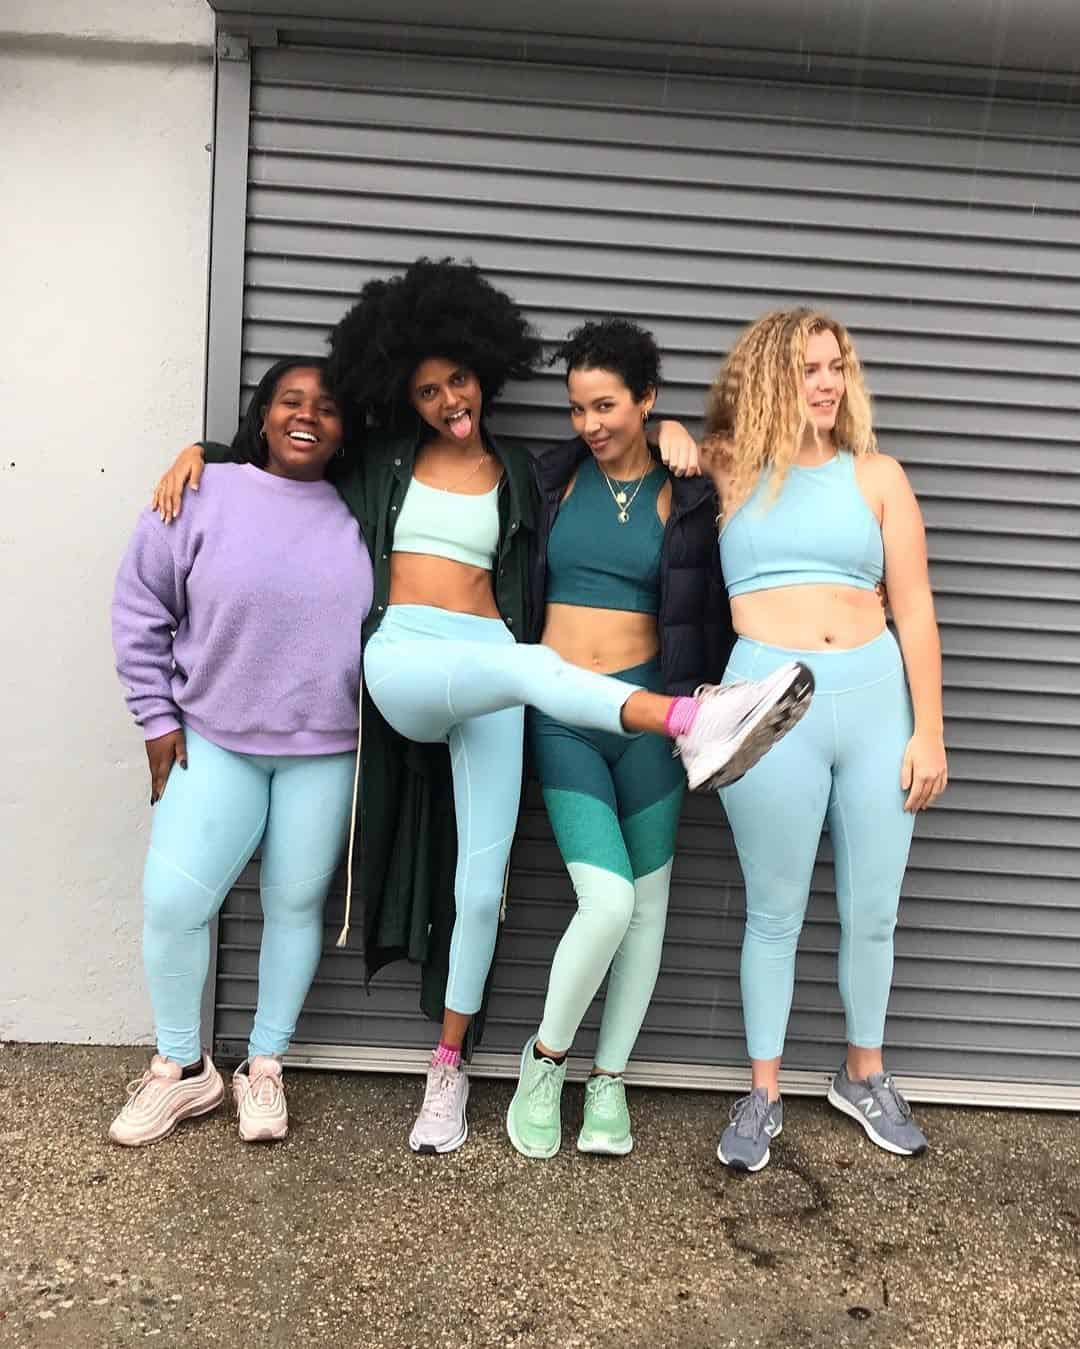 outdoor voices yoga gear on women